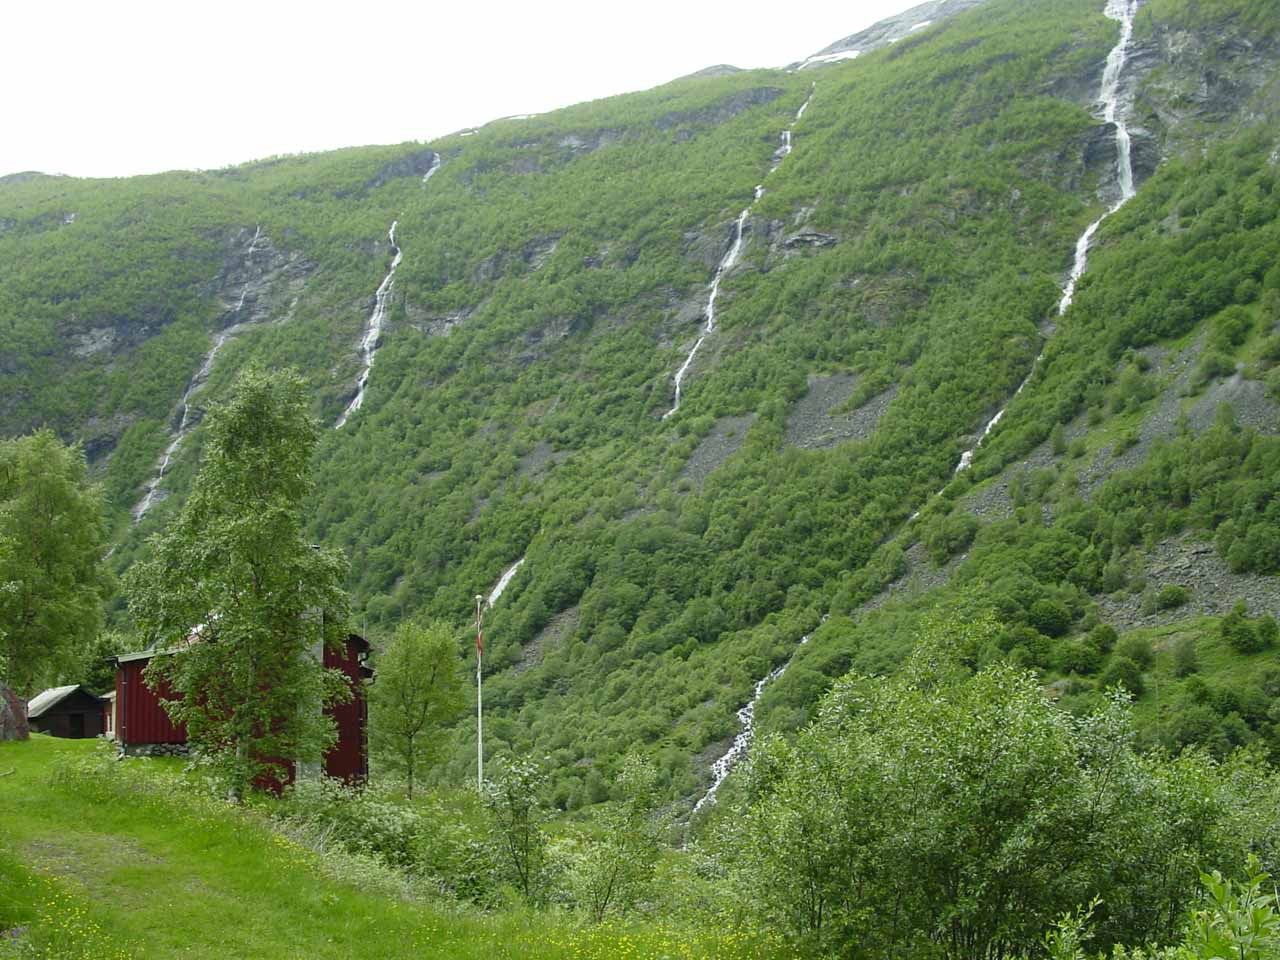 This set of four thin waterfalls tumbling side-by-side with each other was seen near the hamlet of Vetti.  They were on the brooks Nonbekken, Nybekken, and Storebekken